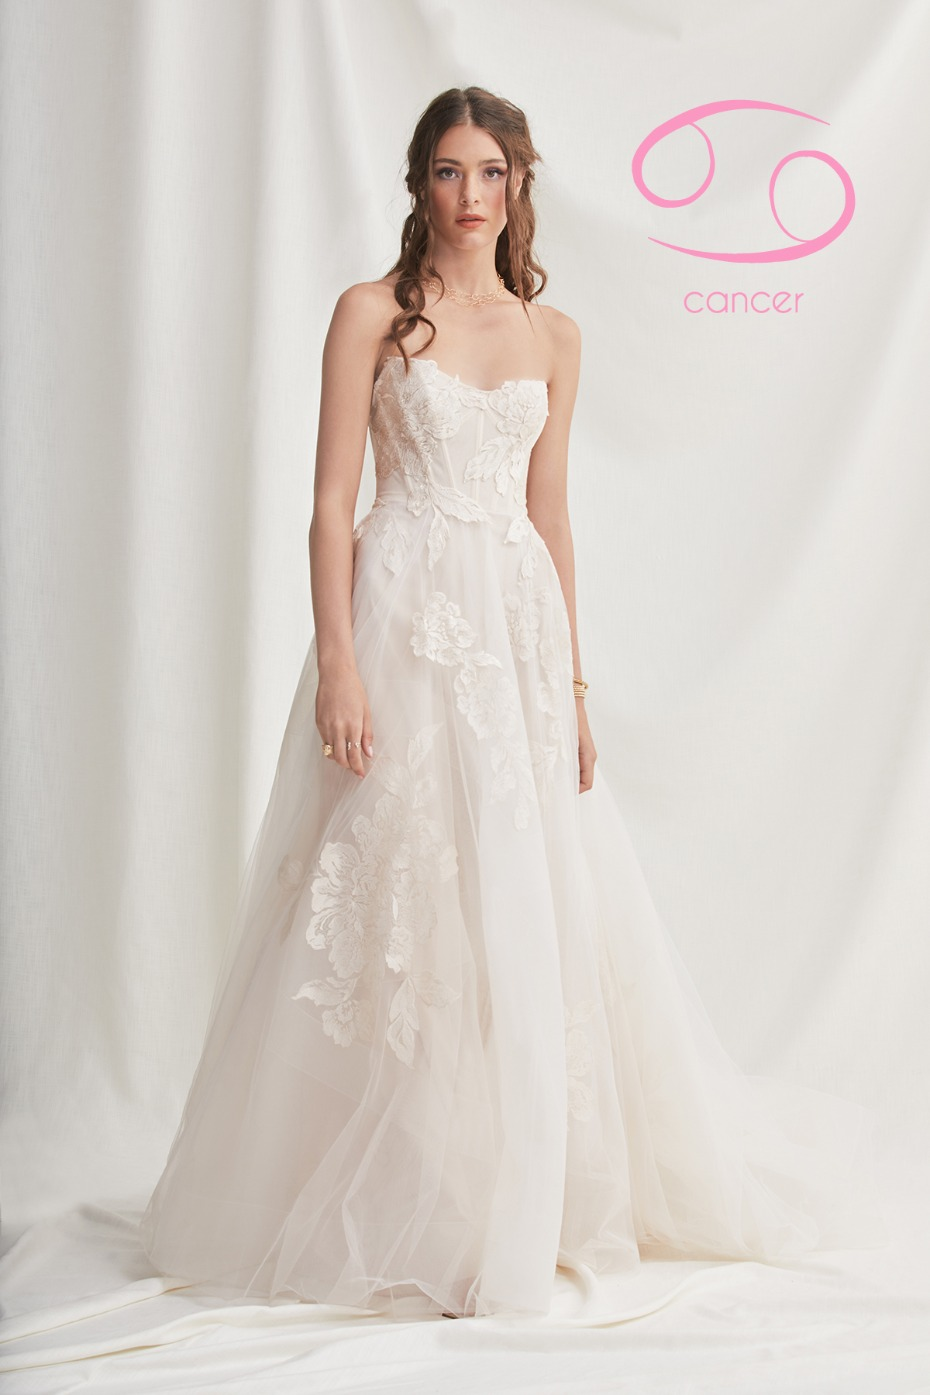 classic aline wedding dress perfect for the Cancer Zodiac